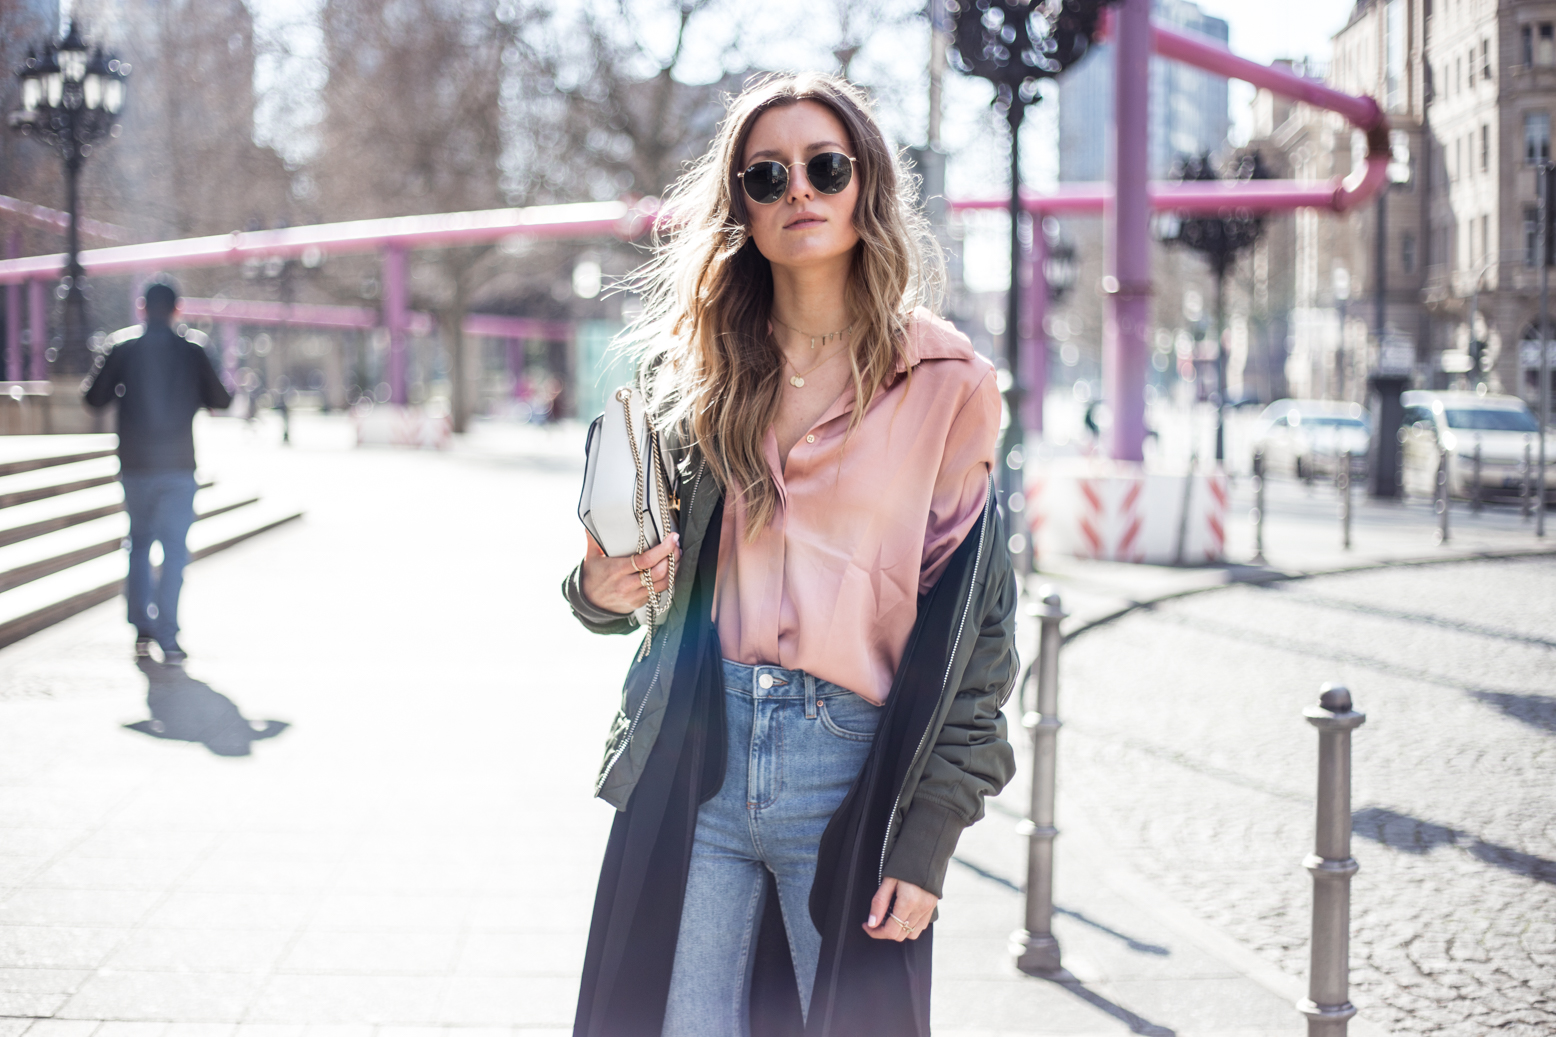 silk-shirt-bomber-jacket-outfit-1353